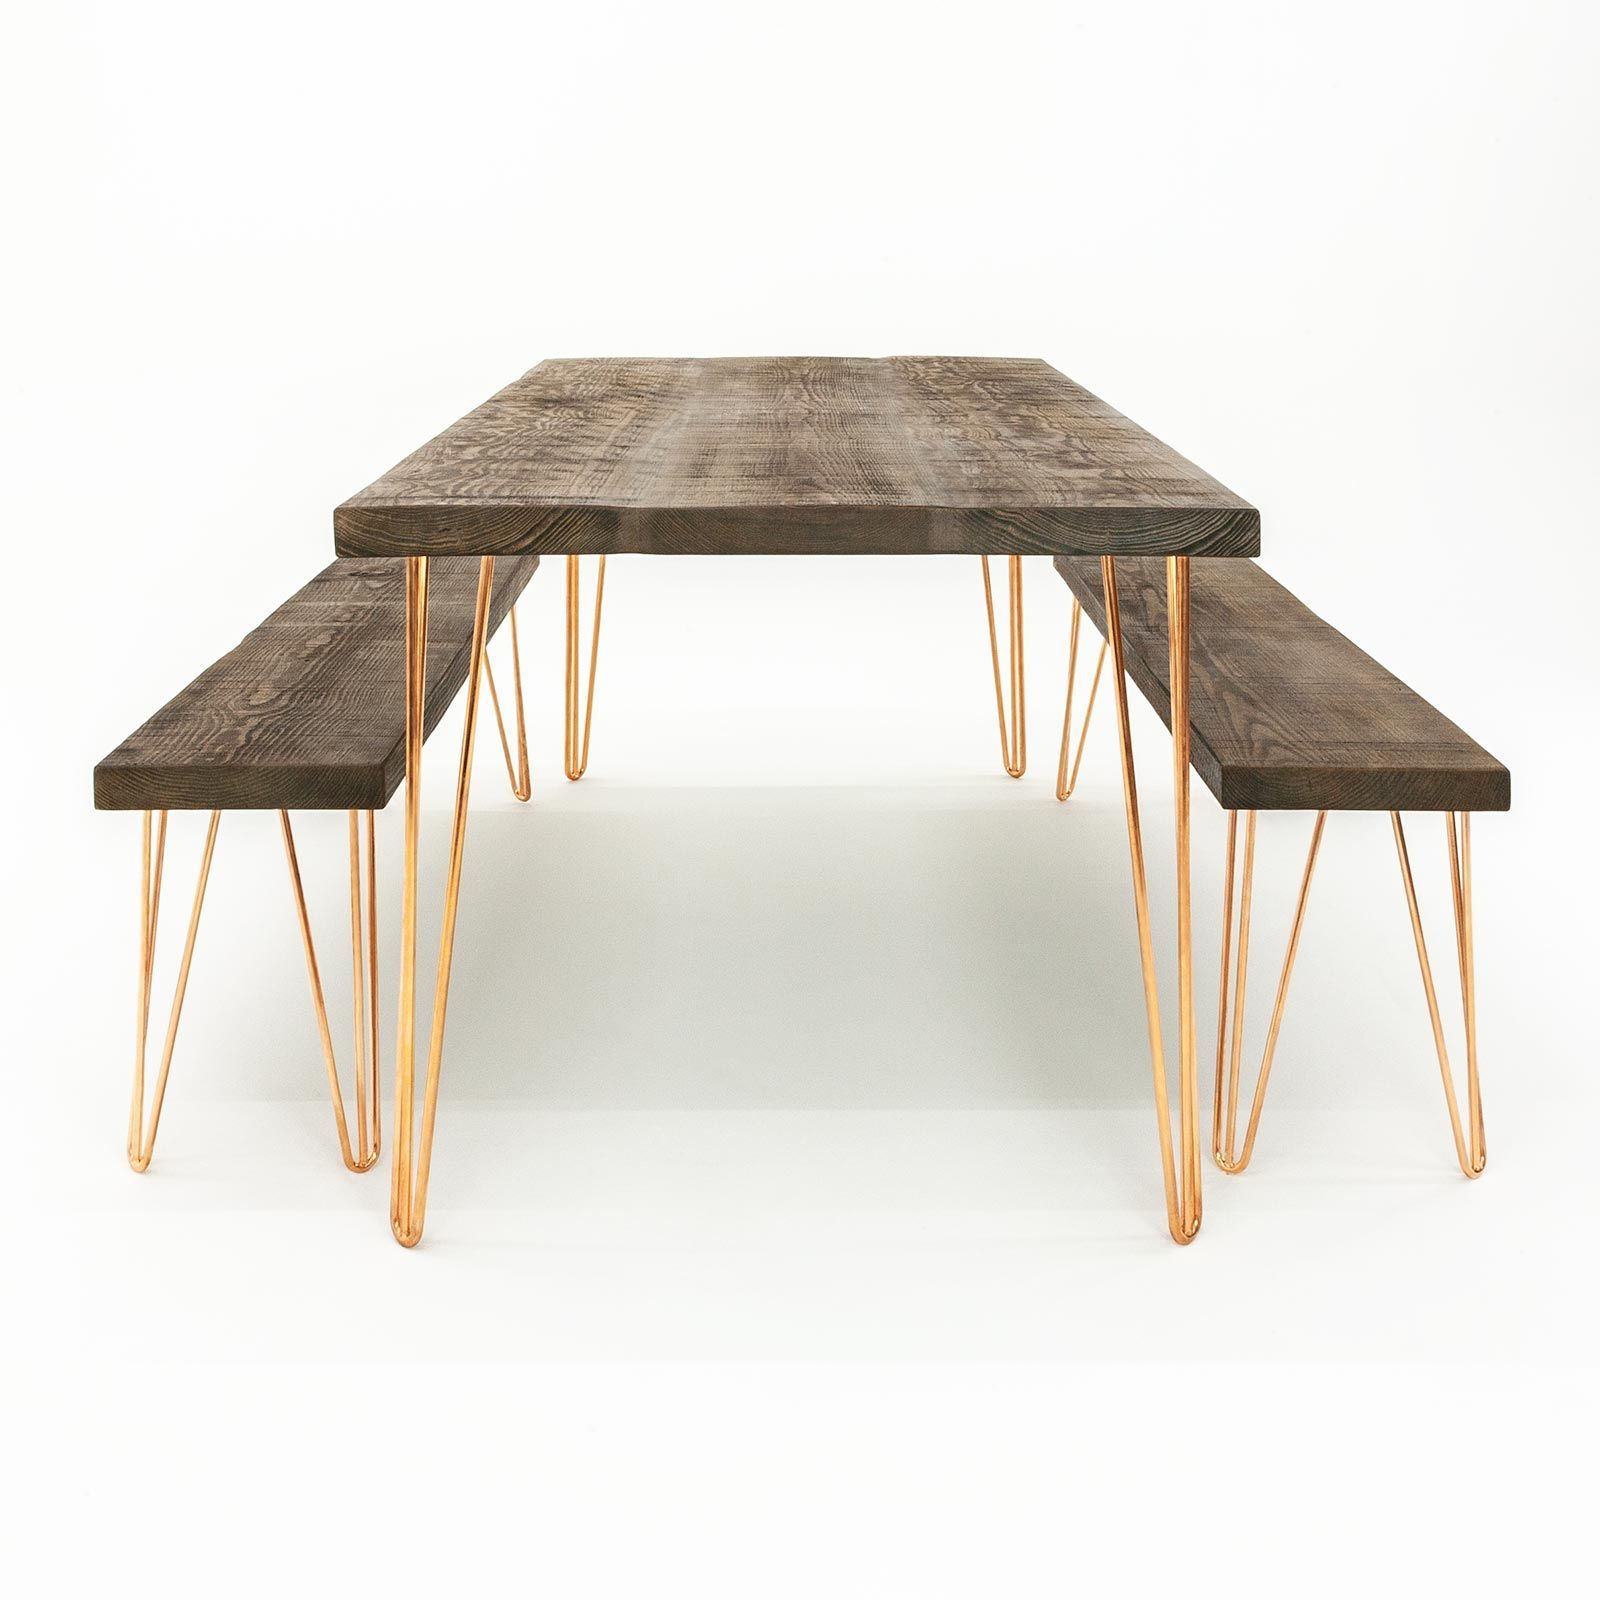 Ouseburn Hairpin Leg Dining Table Benches Rustic Pine Copper